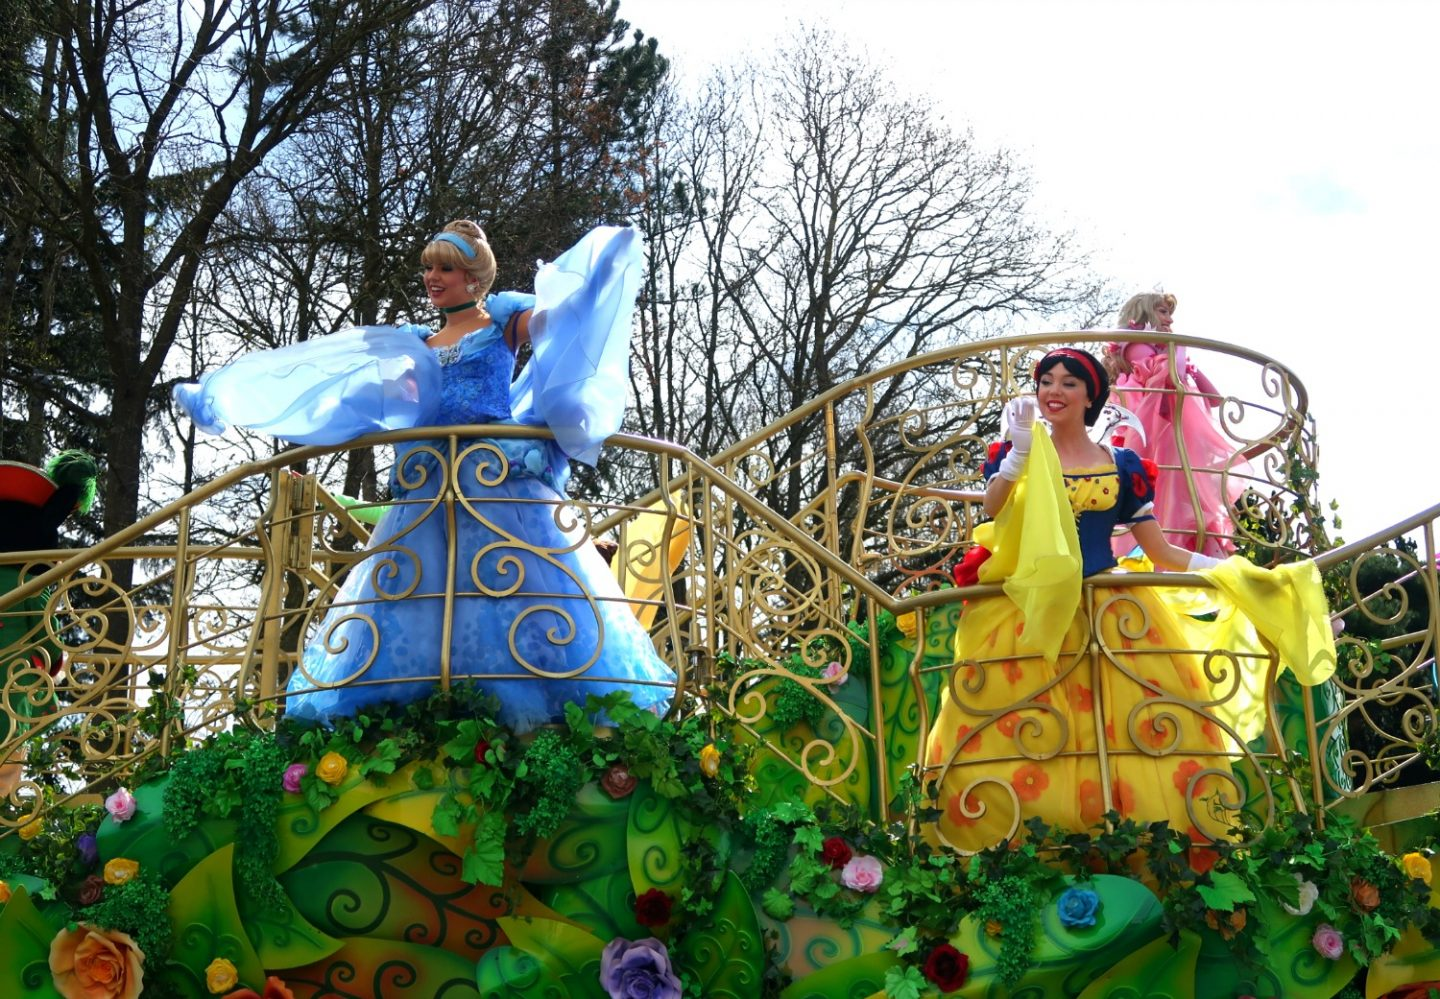 The parade at Disneyland Paris